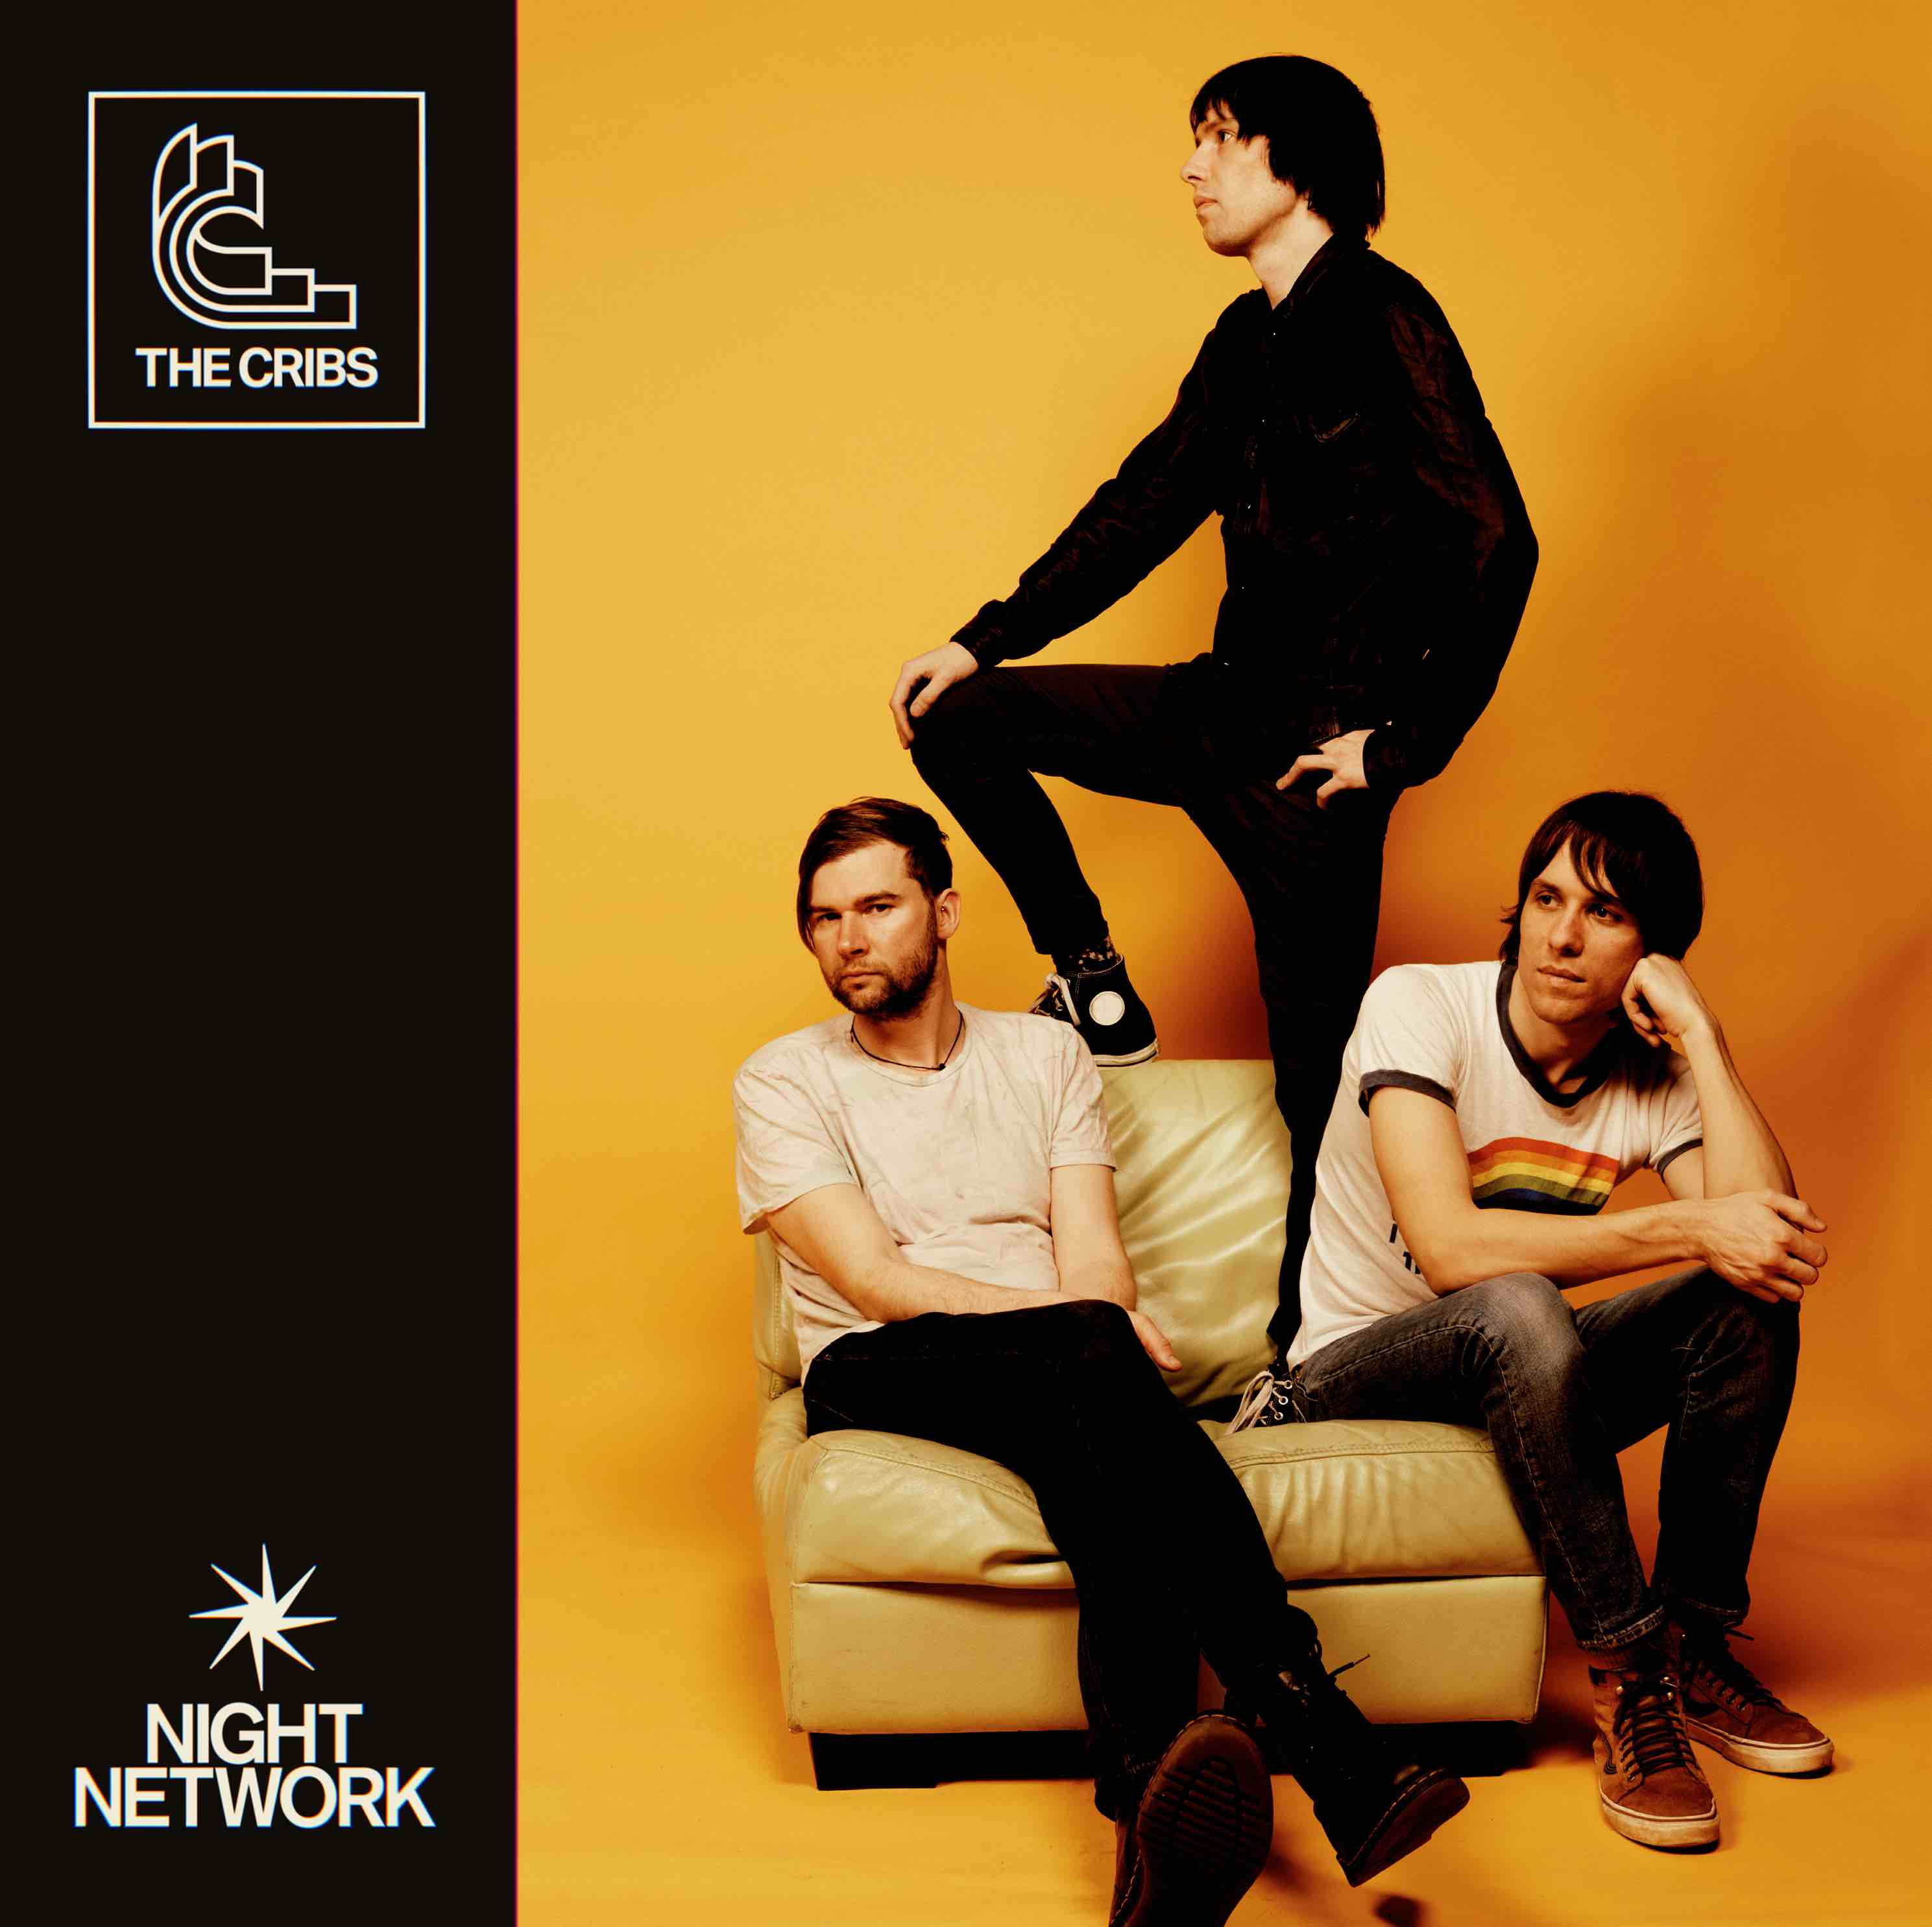 The Cribs - 'Night Network'